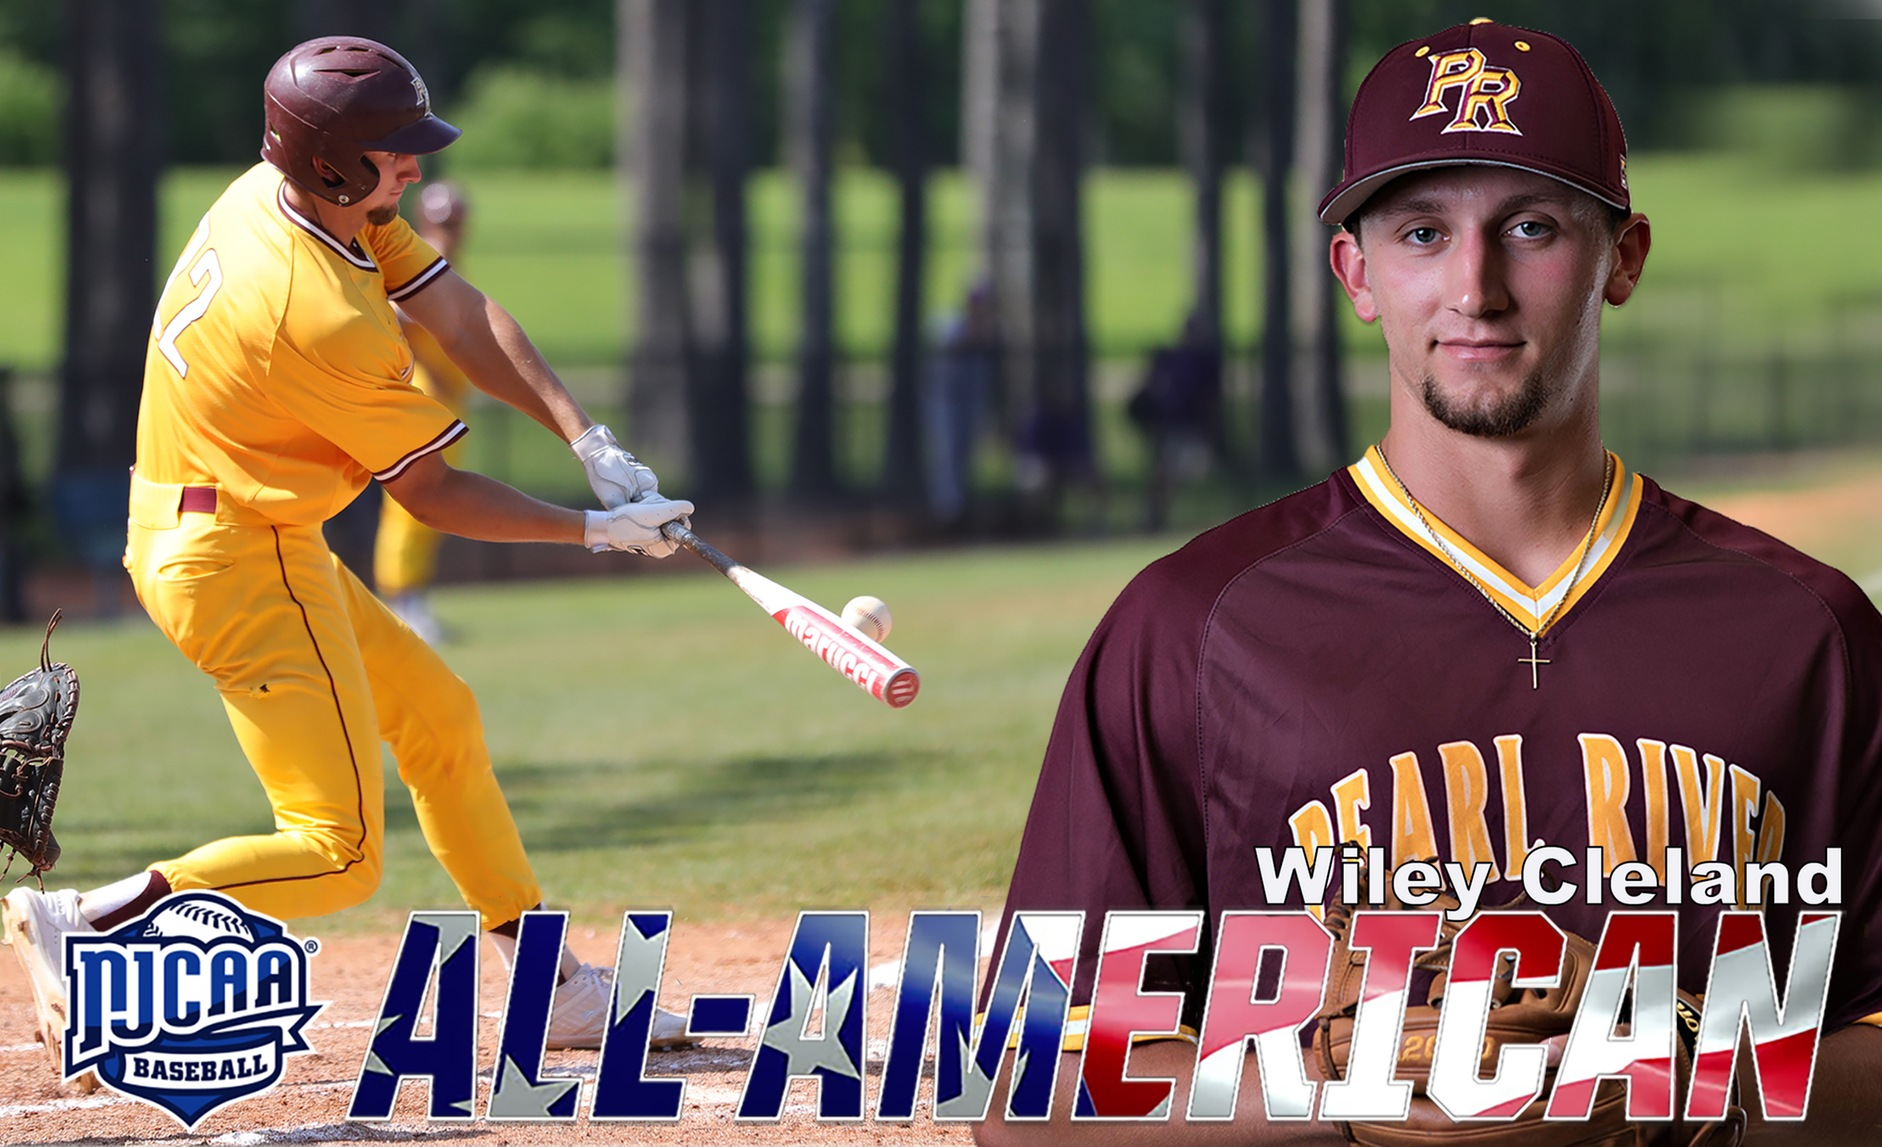 Pearl River's Wiley Cleland named All-American